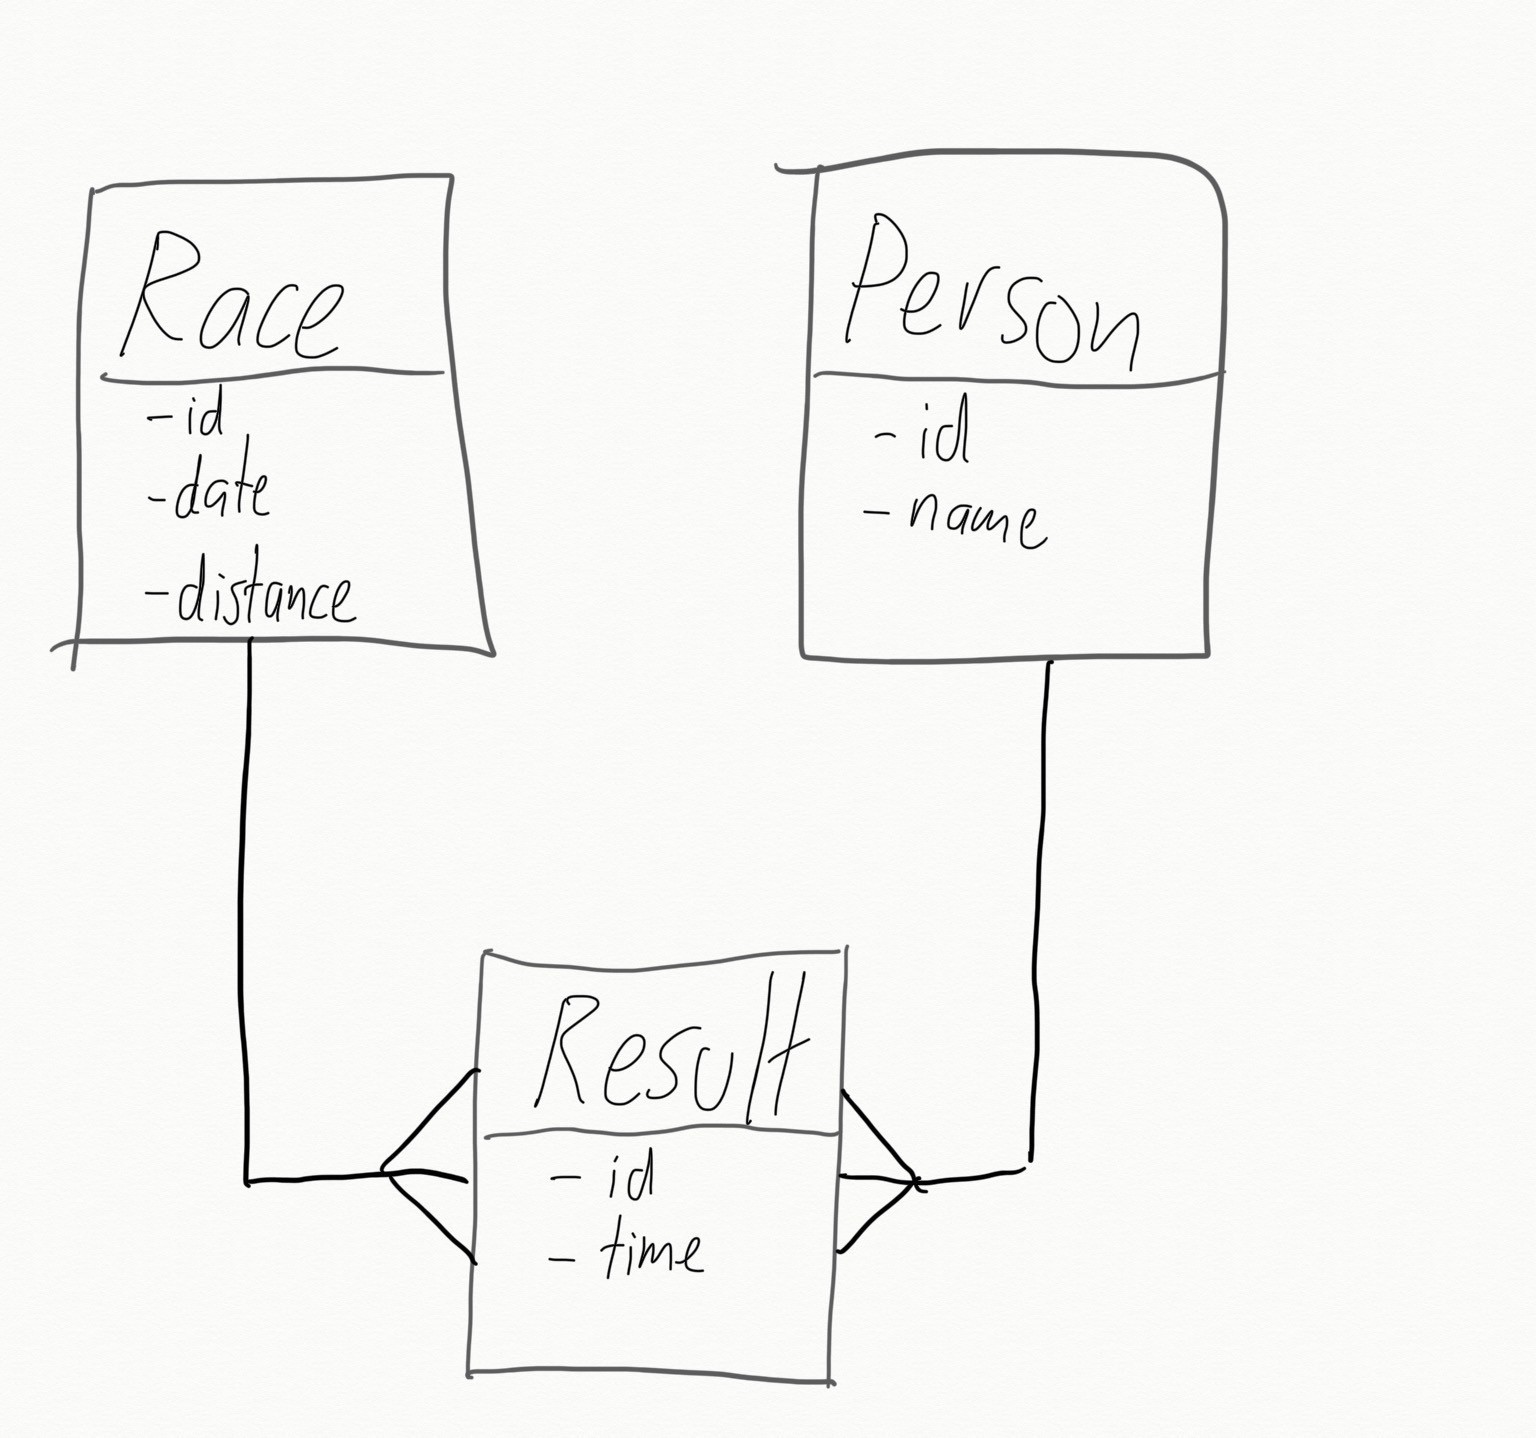 Data model showing a one to many relationship from Race to Result and from Person to Result